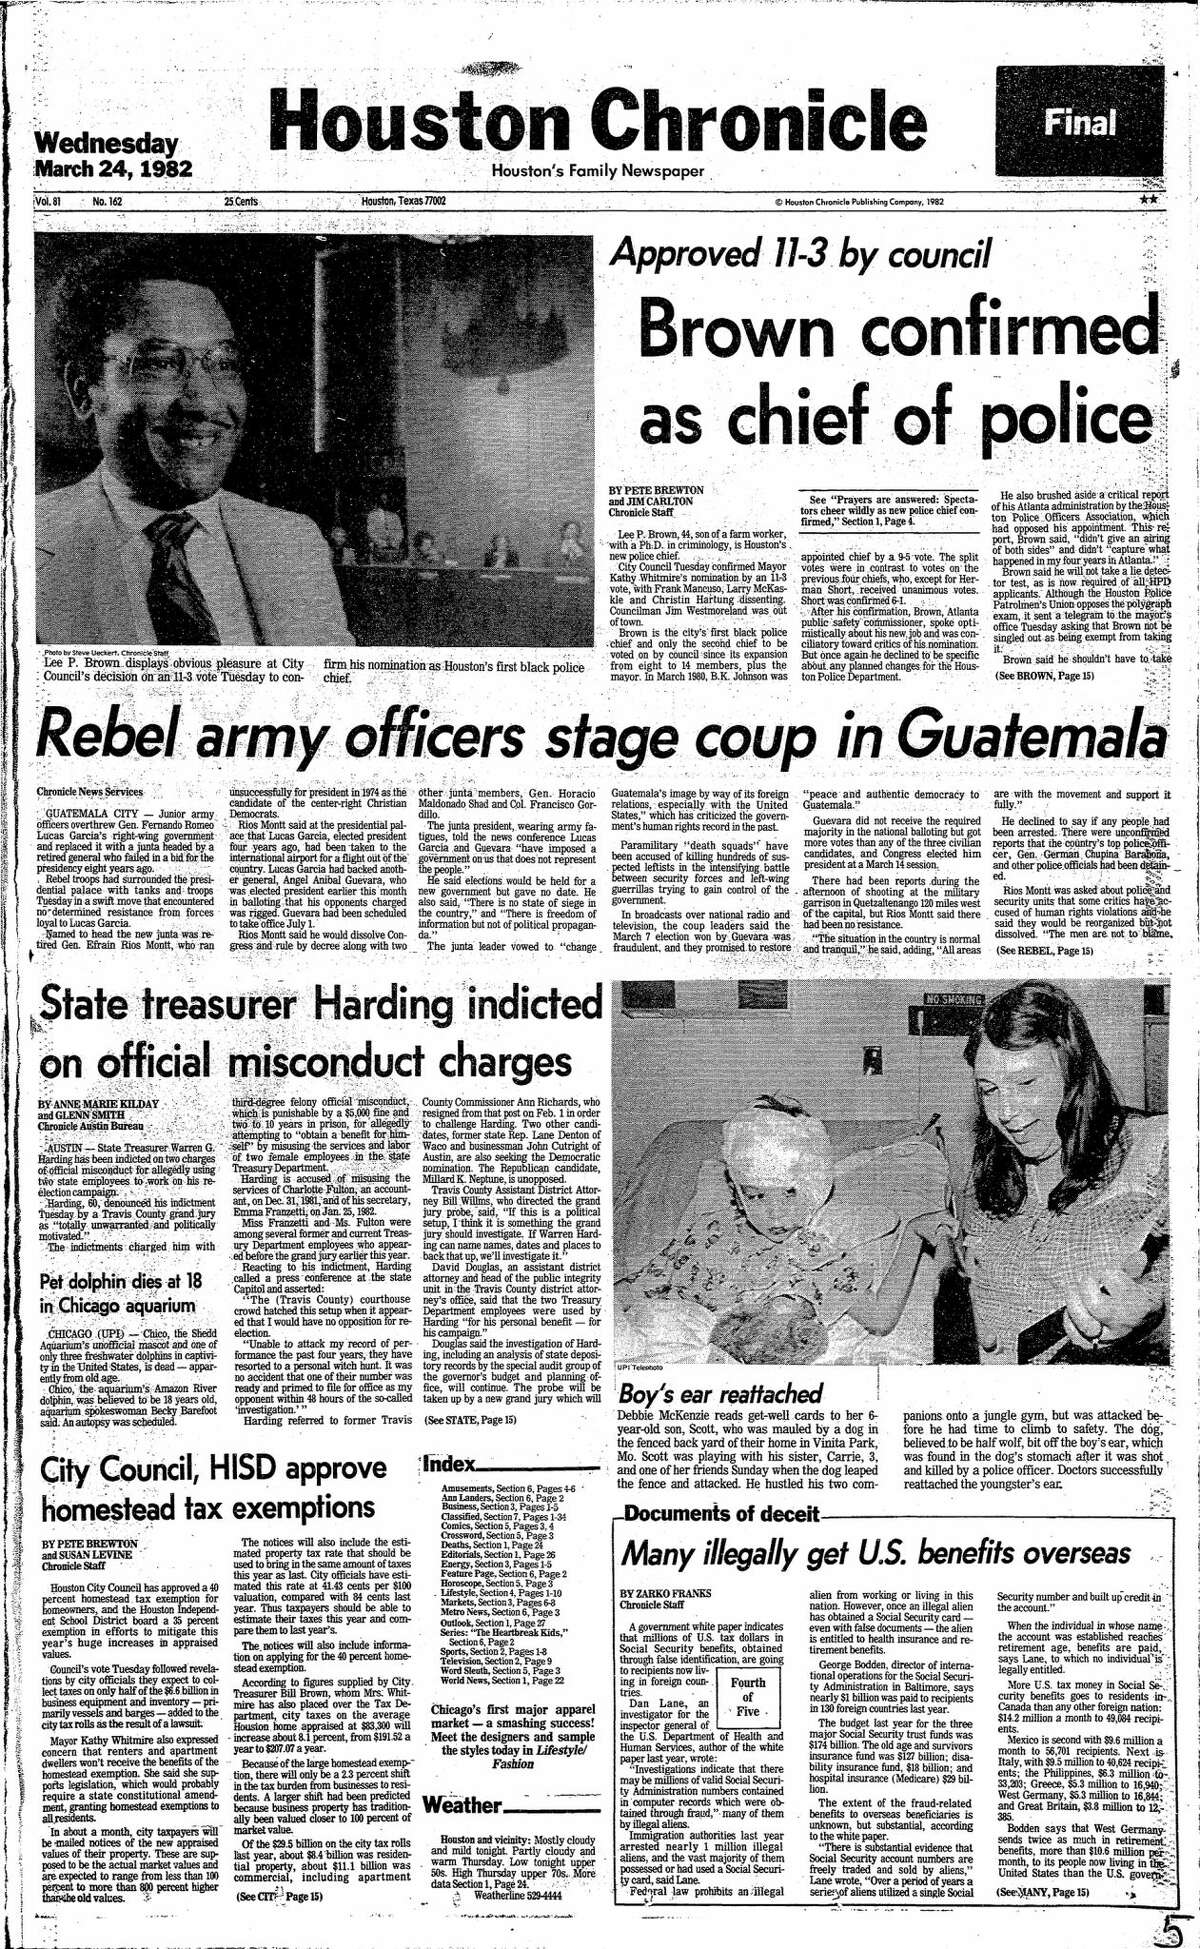 Houston Chronicle front page from March 24, 1982.